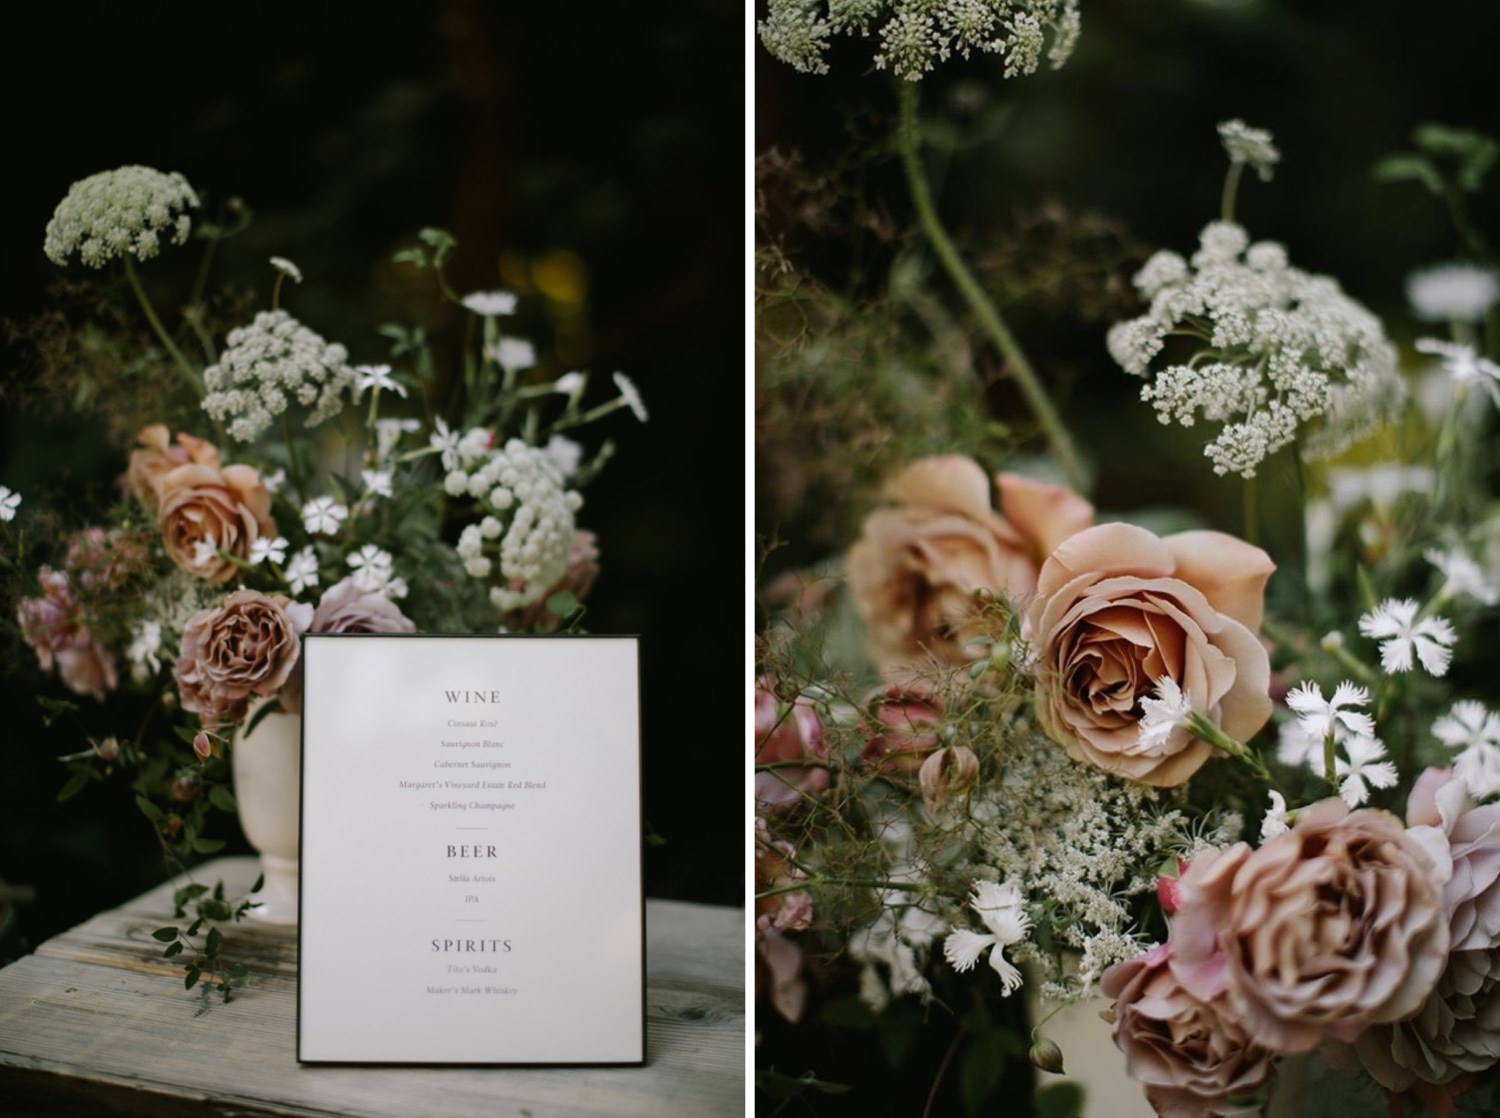 Modern wedding details with garden roses at Woodinville's JM Cellars